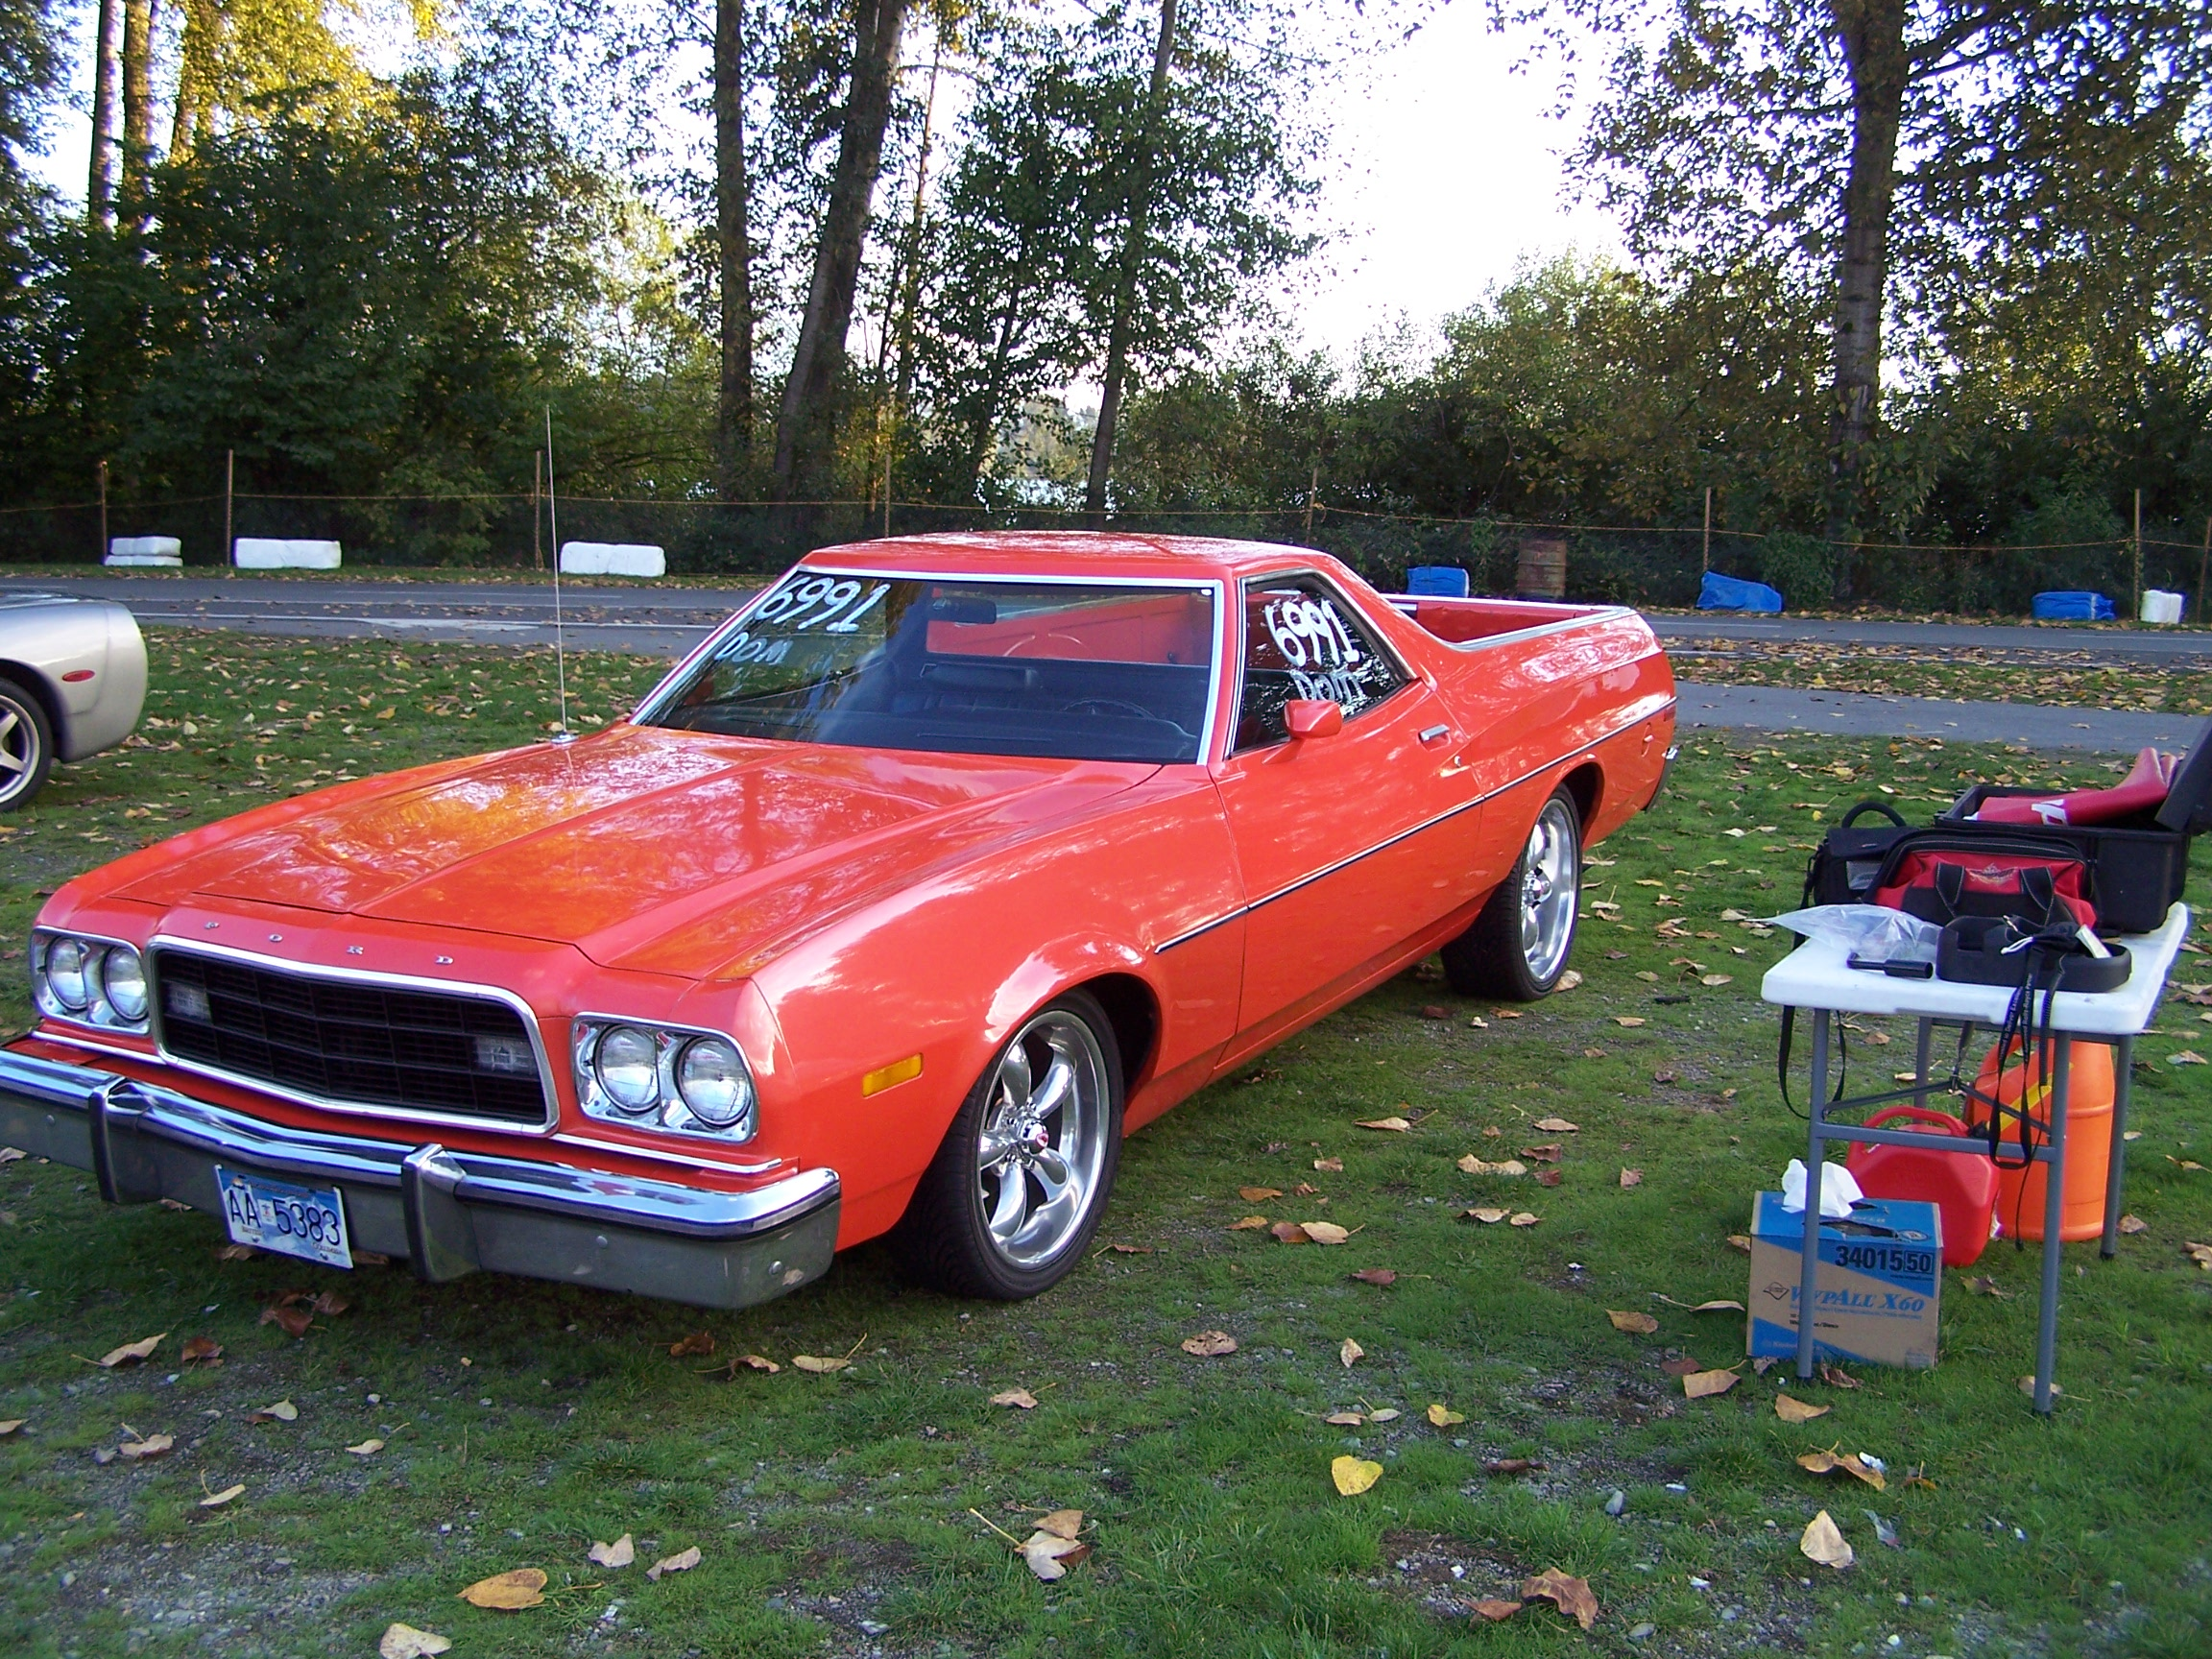 Muscle Car Wallpaper Iphone 6 1973 Ford Ranchero Full Hd Wallpaper And Background Image